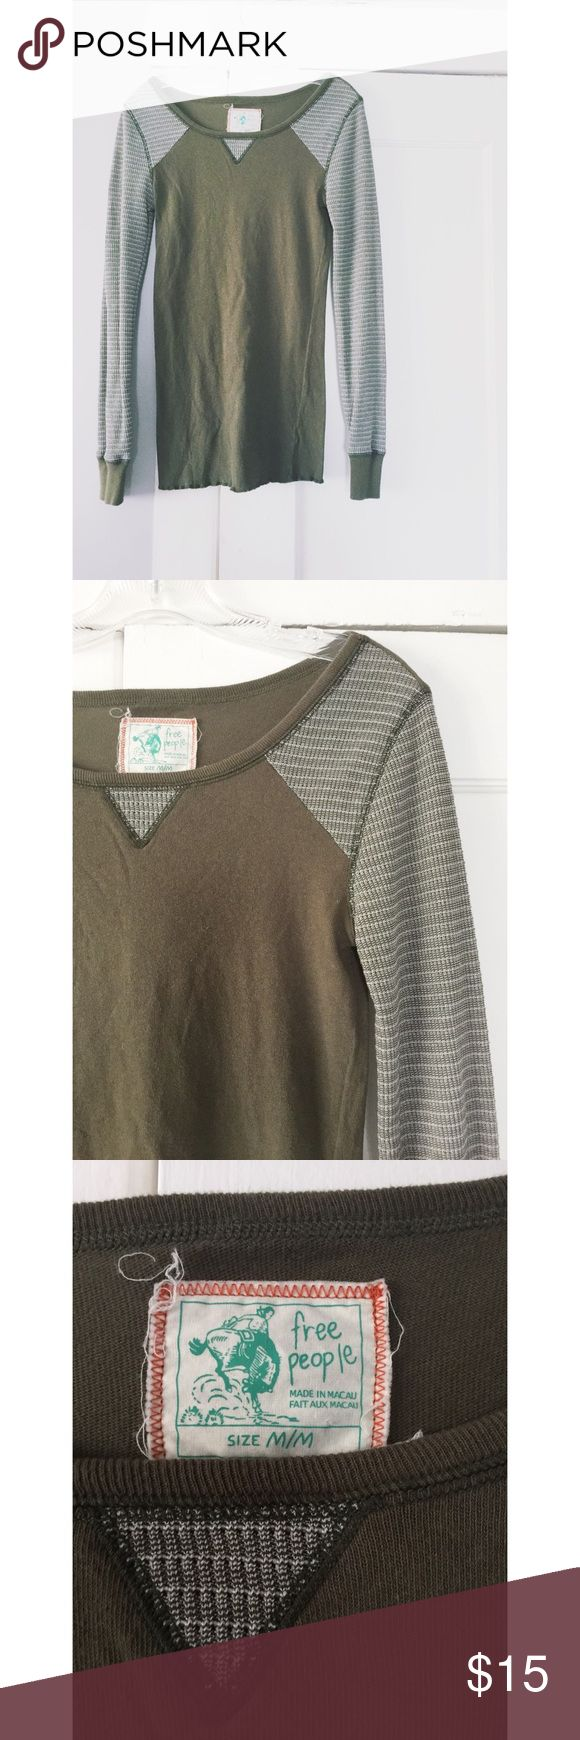 Free People Top Free People Top.  Thermal sleeves.  Oliver green and cream.  Women's size medium.  Great condition. Free People Tops Tees - Long Sleeve